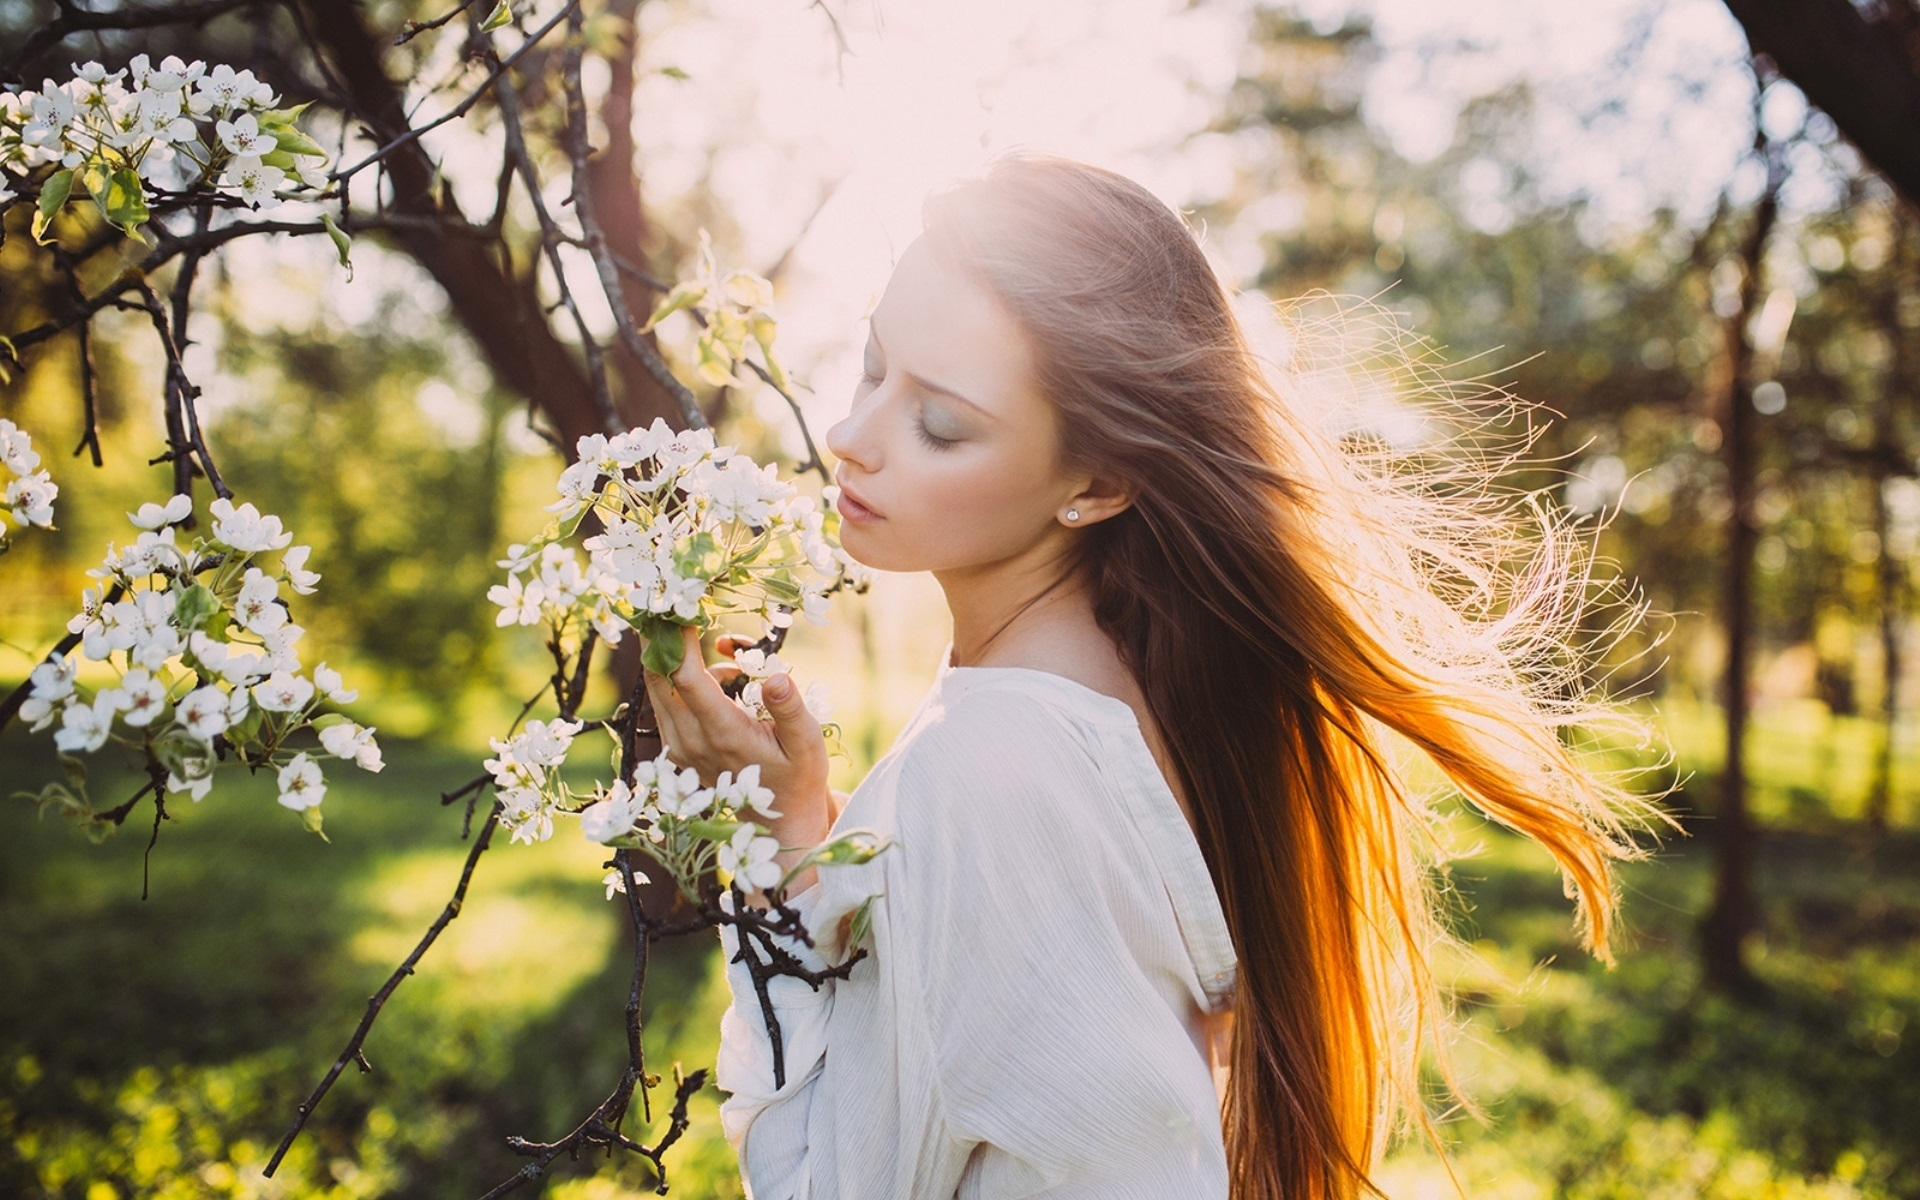 girl-hair-in-the-wind-sun-rays-spring-white-flowers-1080P-wallpaper